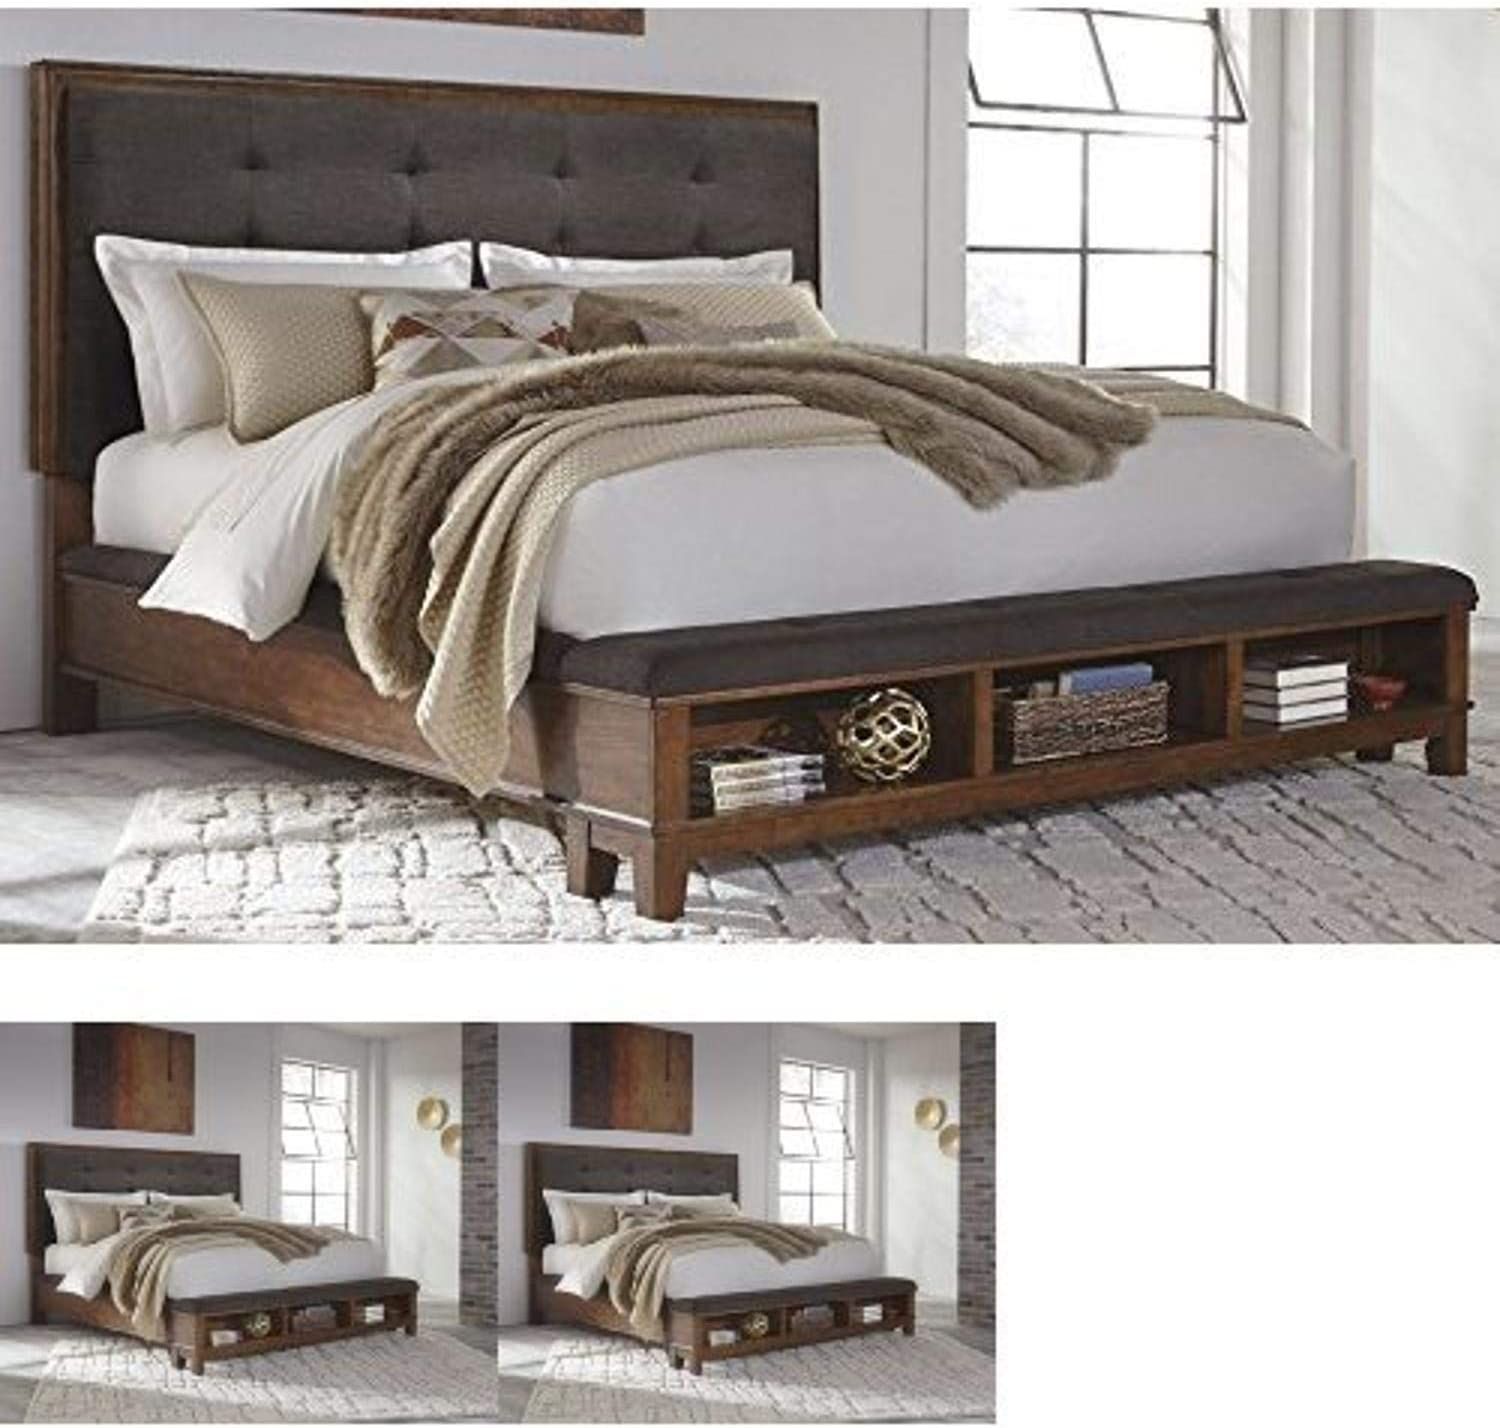 Ashley Furniture Signature Design - Ralene Master Bedroom Upholstered Panel Bedset with Storage - Queen Size - Medium Brown